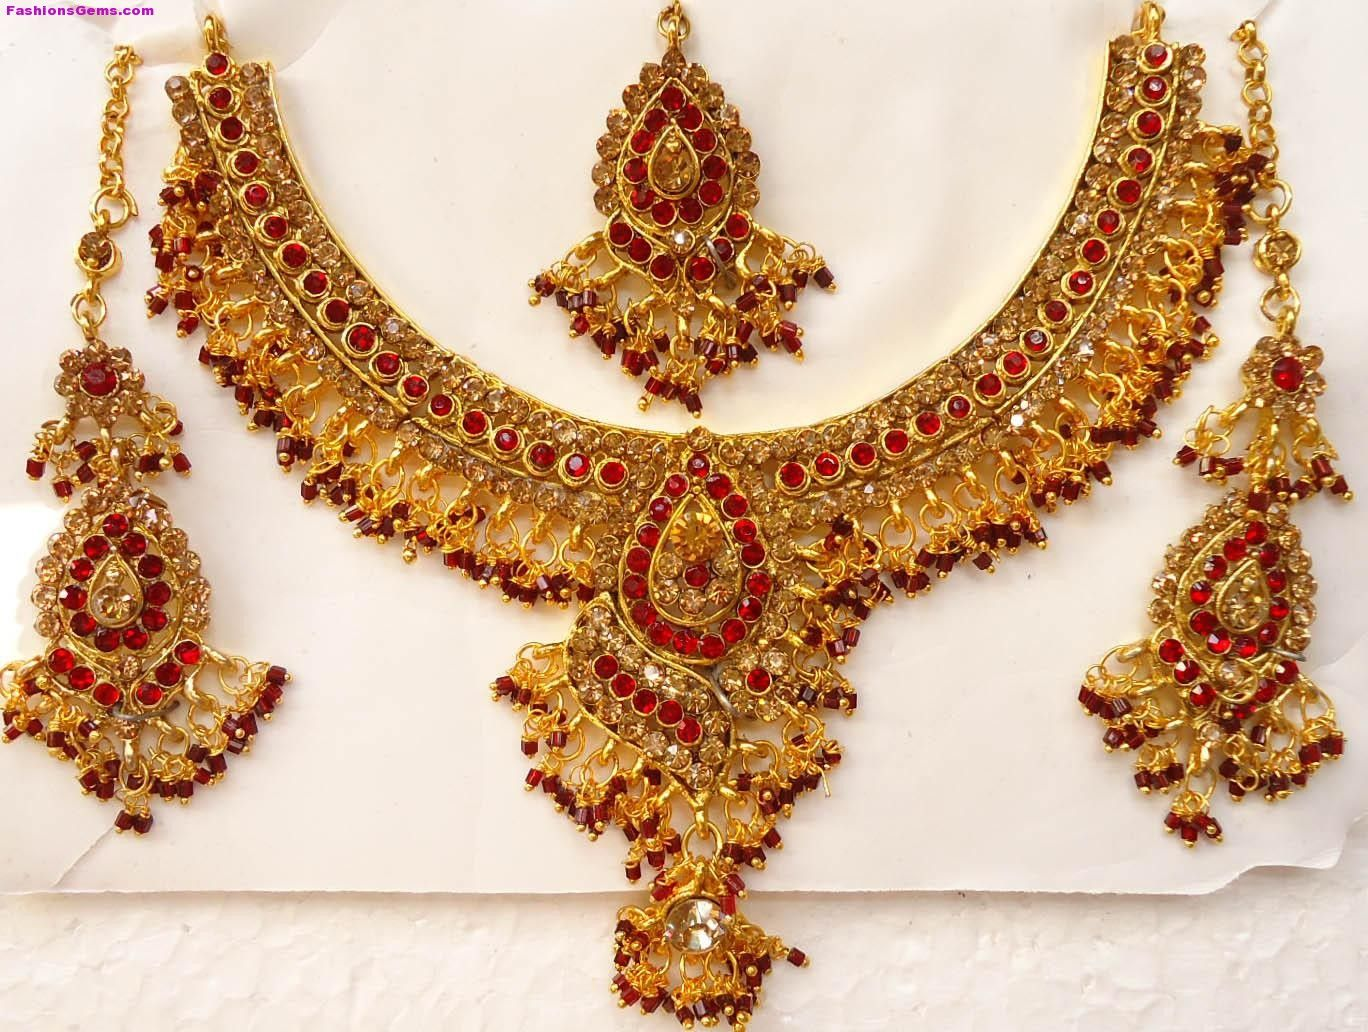 Most Expensive Gold Jewelry Go to StellarPiecescom for even more